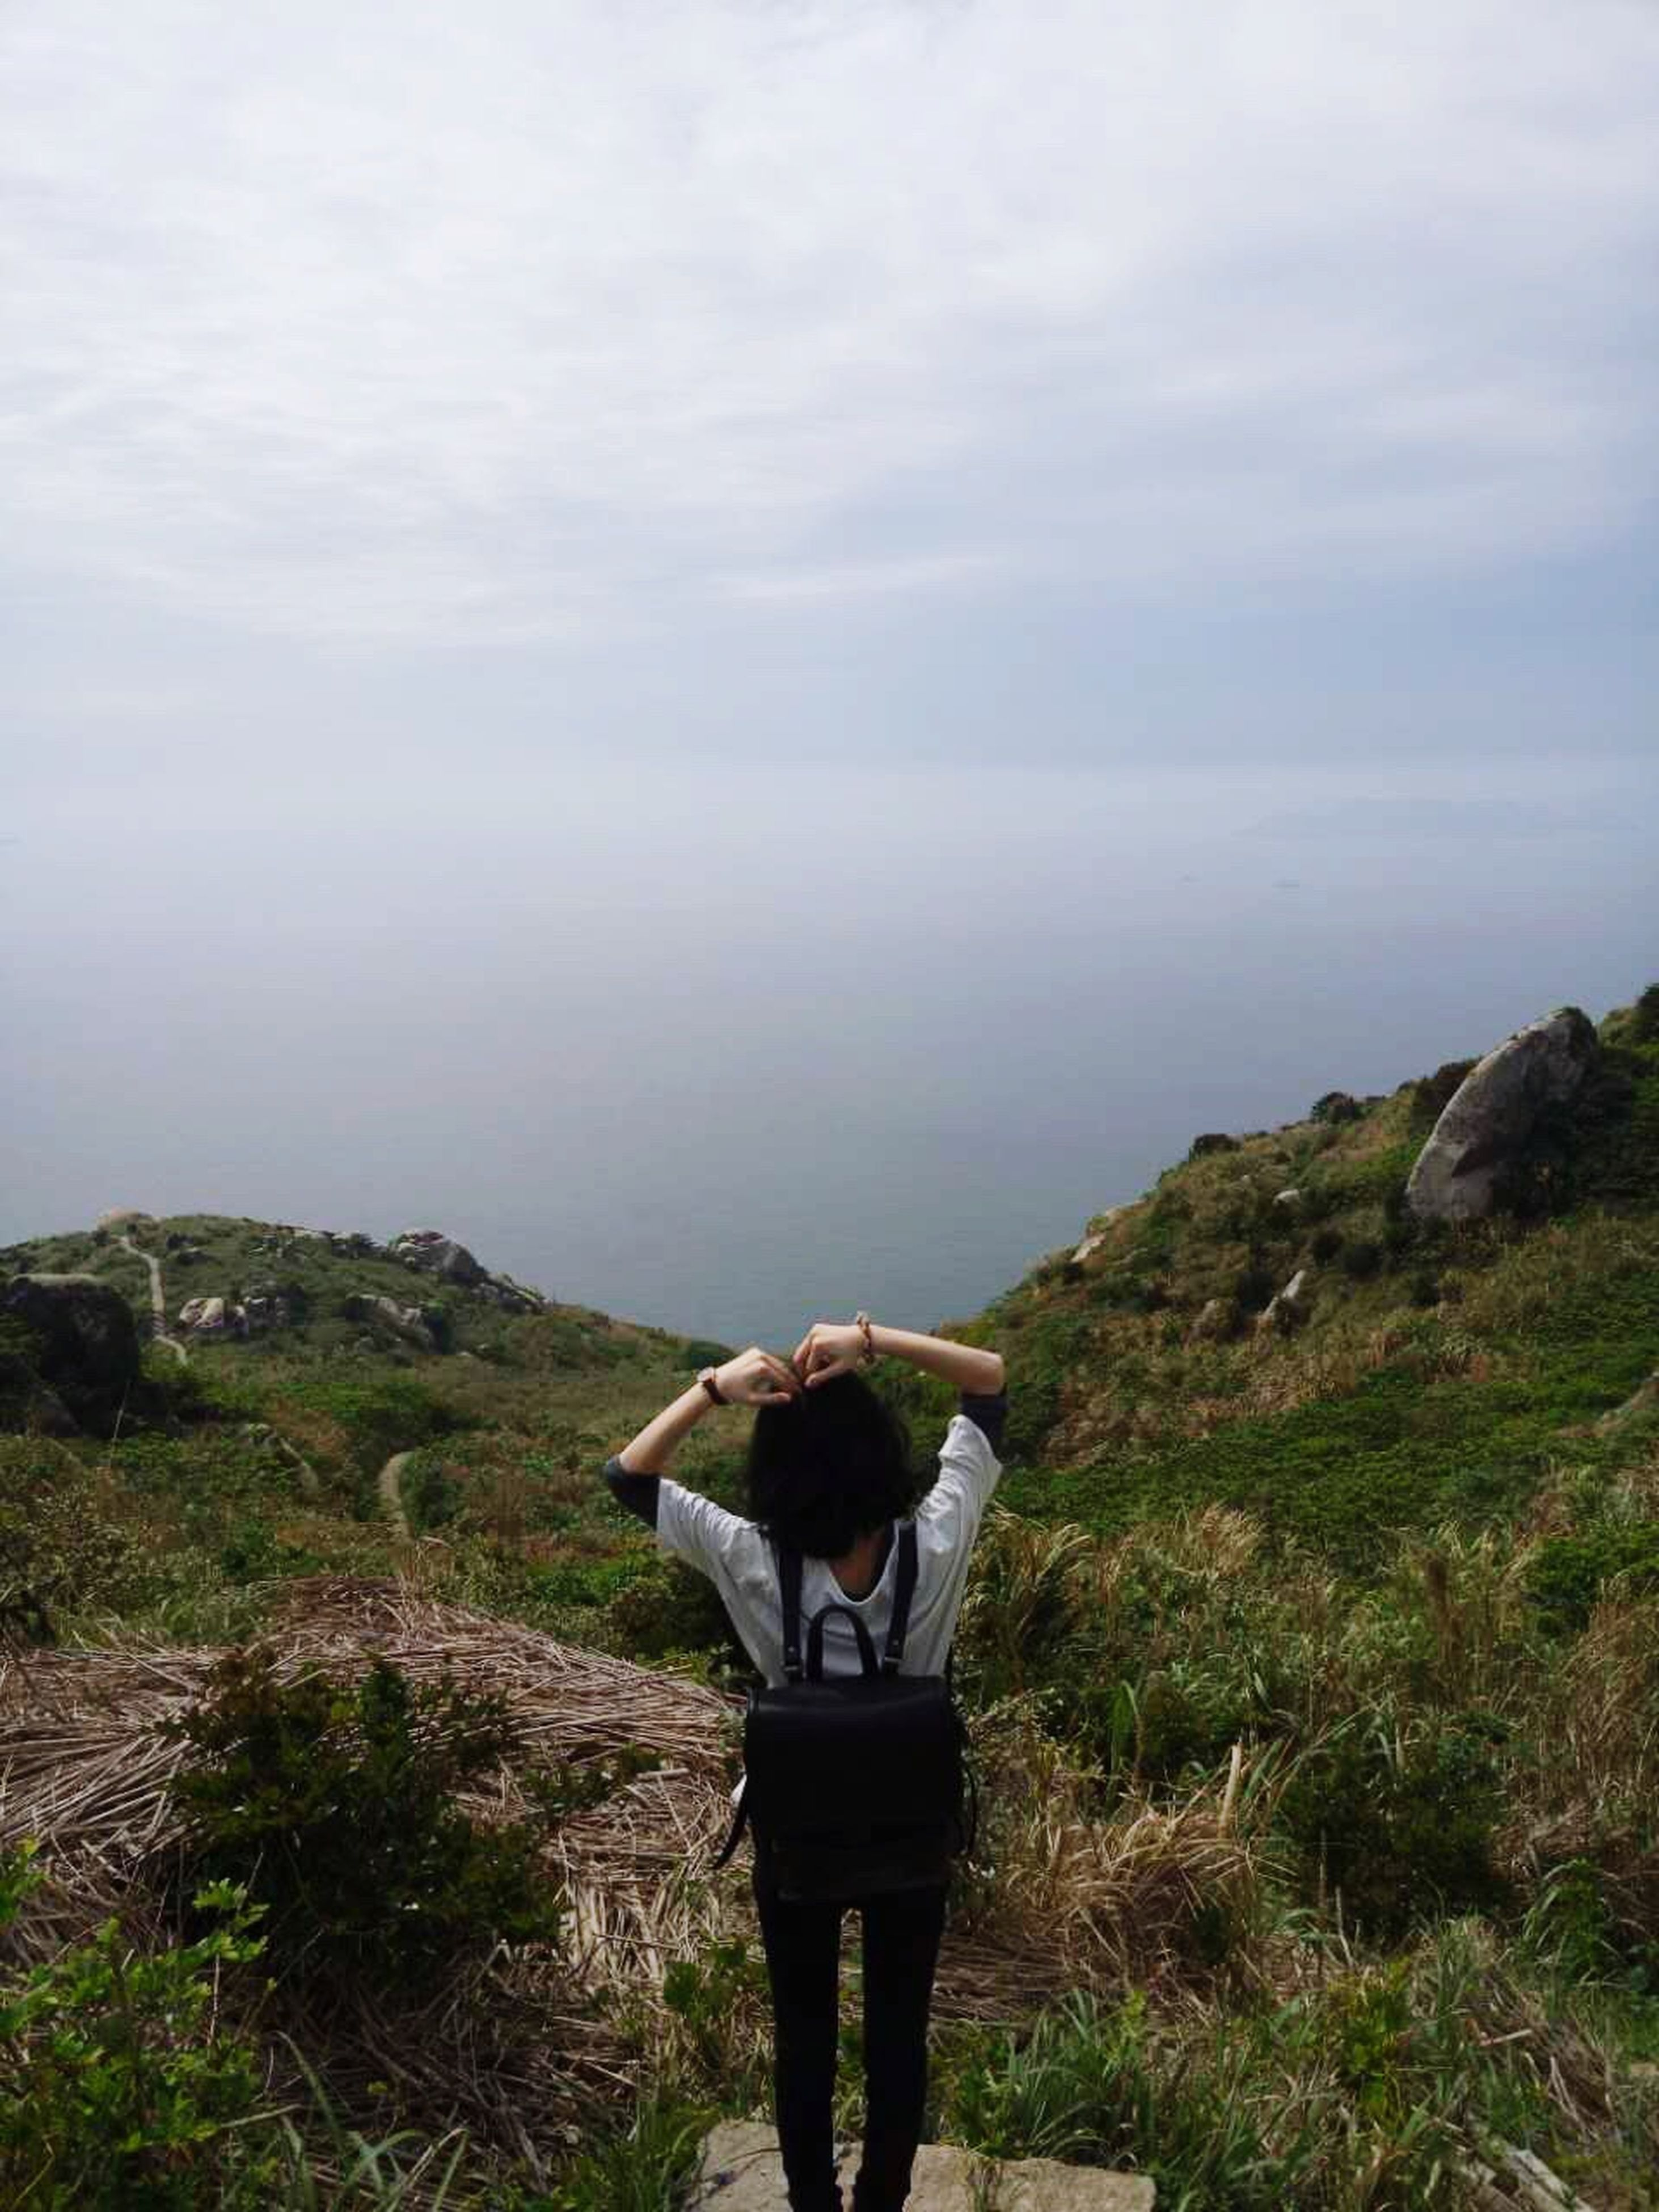 standing, rear view, lifestyles, sky, leisure activity, tranquility, tranquil scene, scenics, men, beauty in nature, nature, cloud - sky, person, mountain, casual clothing, full length, looking at view, landscape